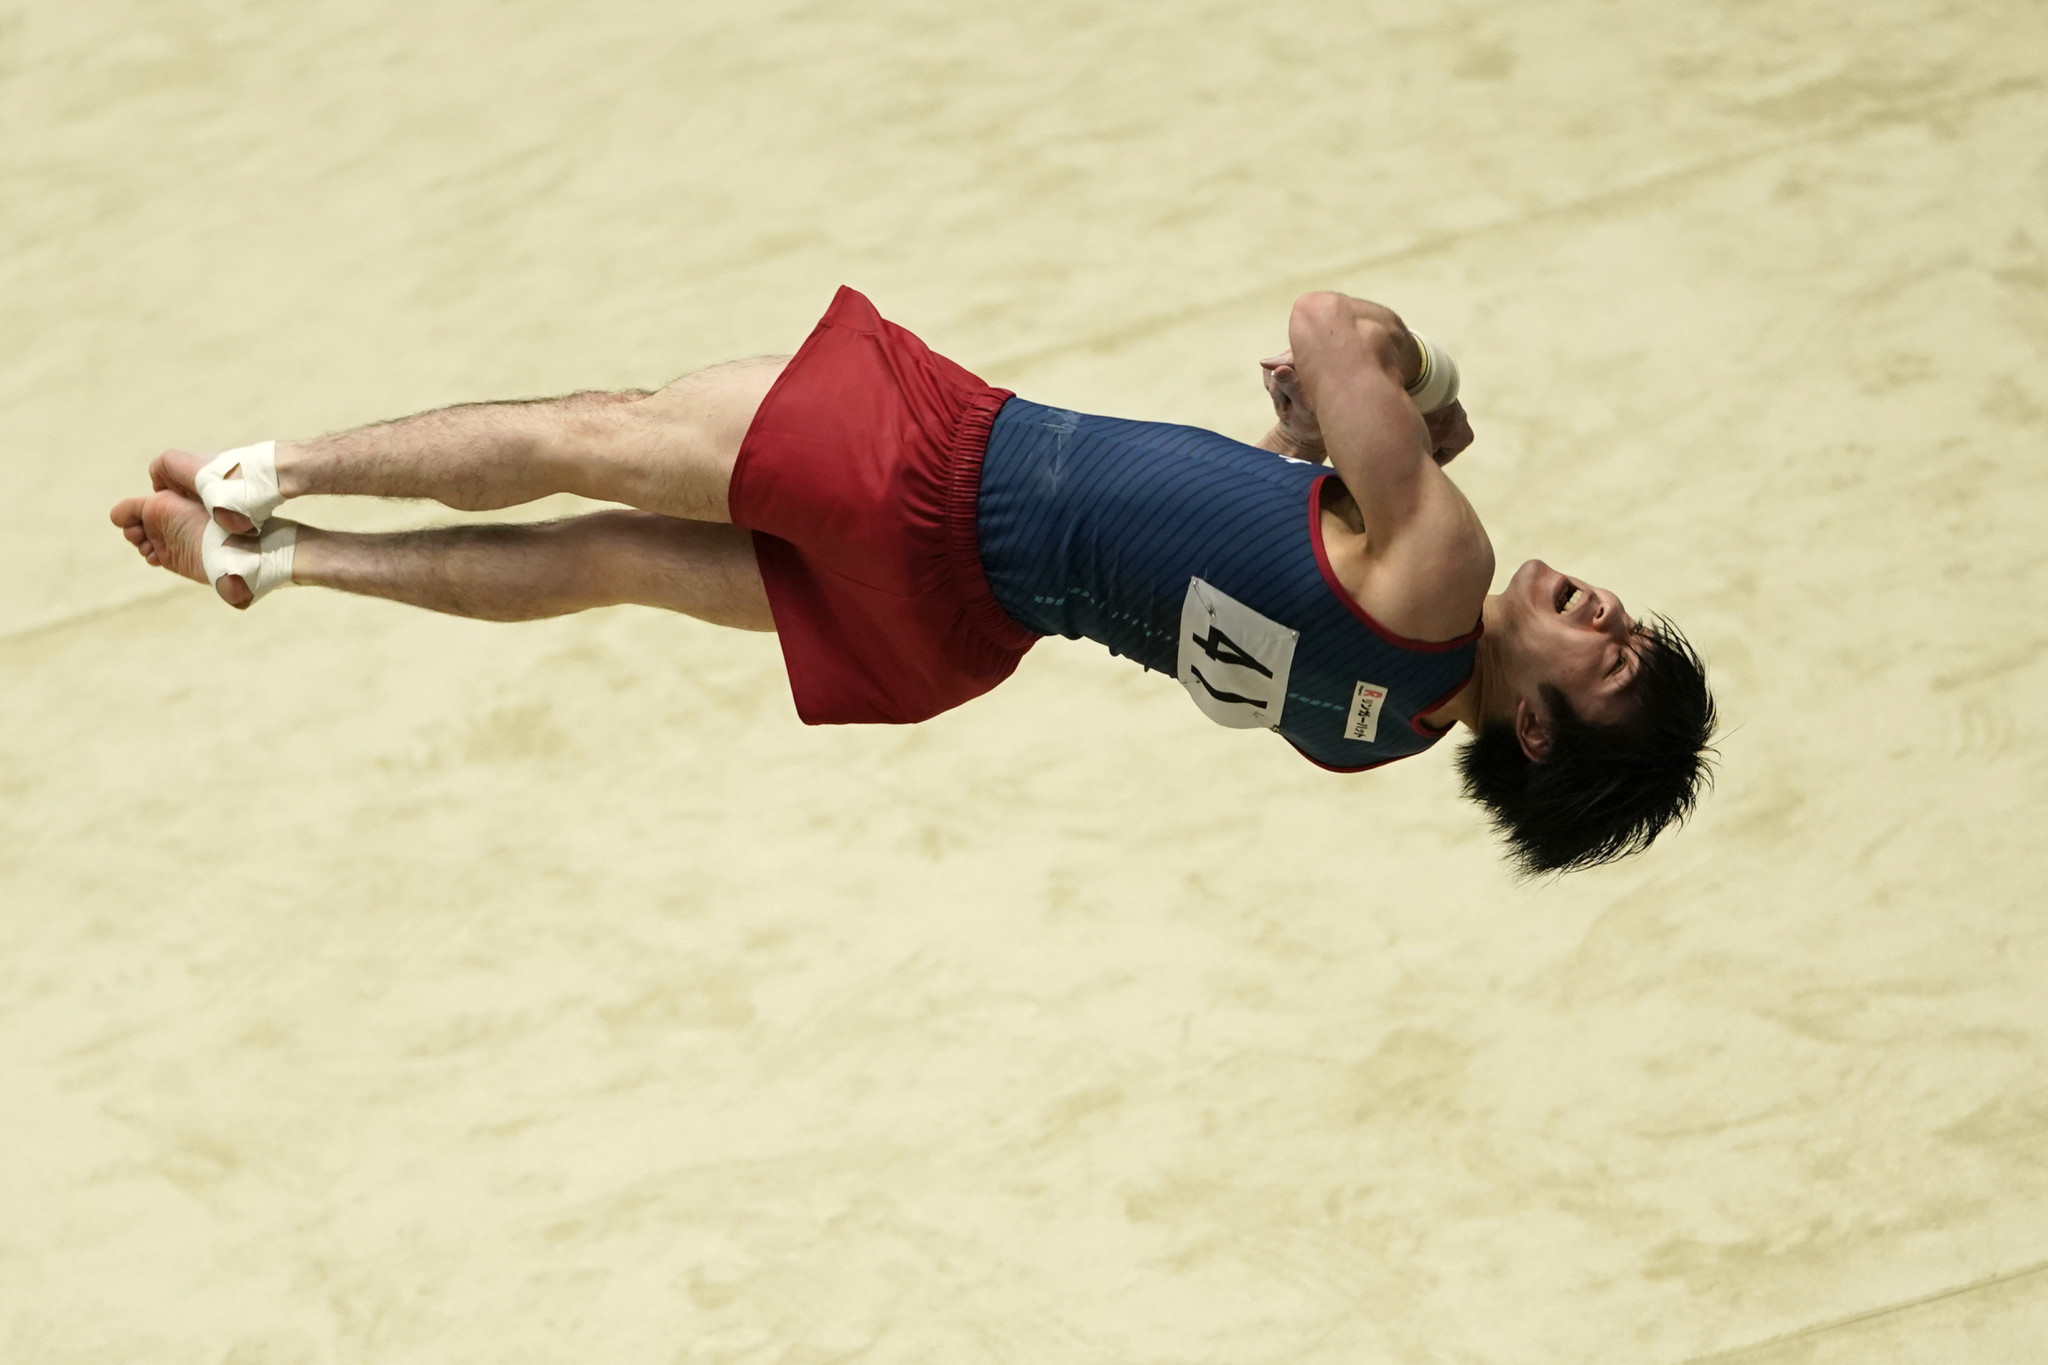 Kōhei Uchimura is among the gymnasts expected to compete at the event ©Getty Images